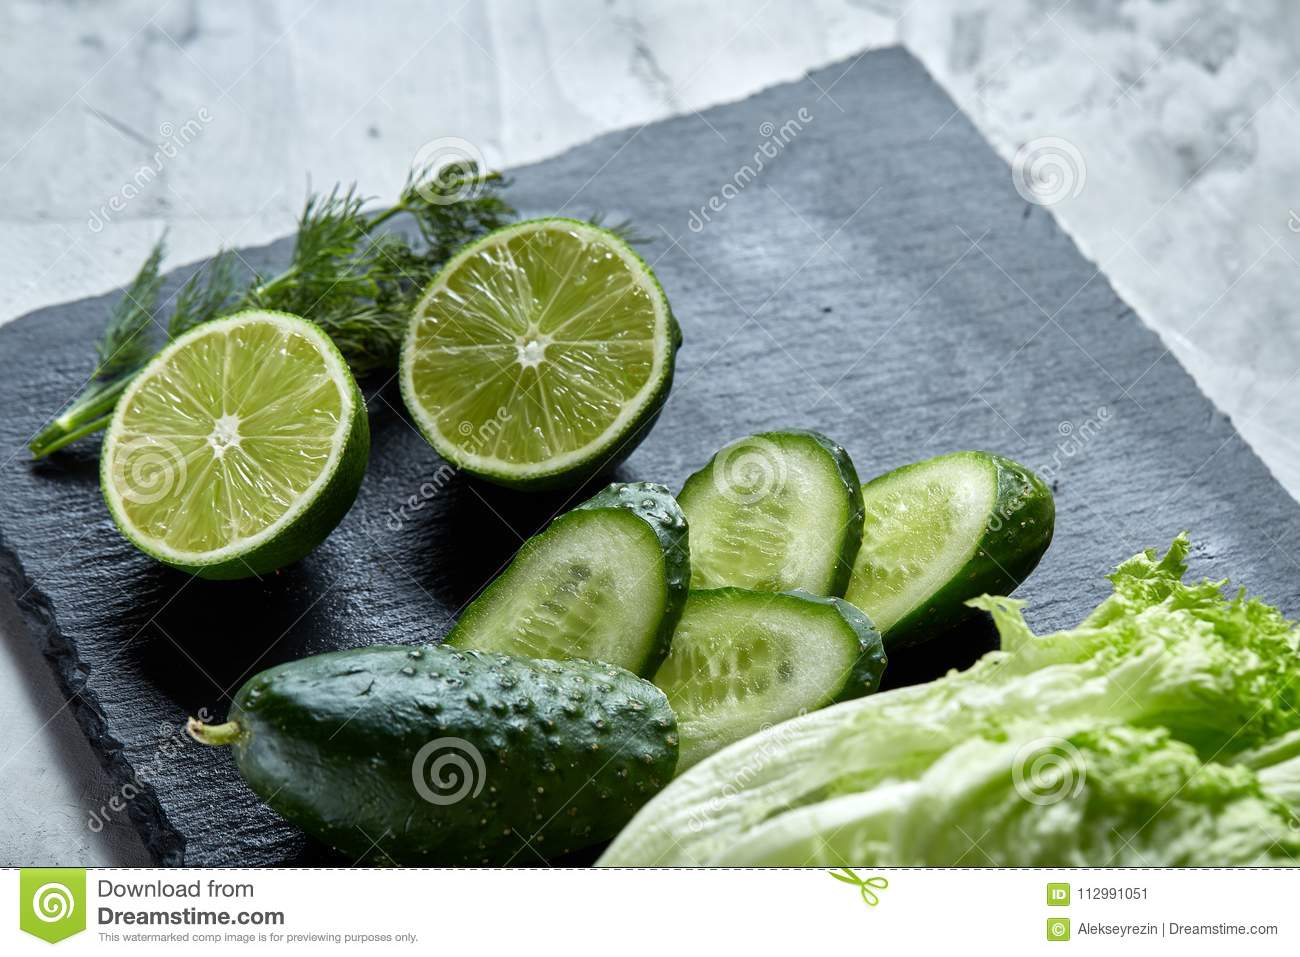 Concept of fresh green lettuce, cucumber, dill, lime on a light background, selective focus, top view, copy space.